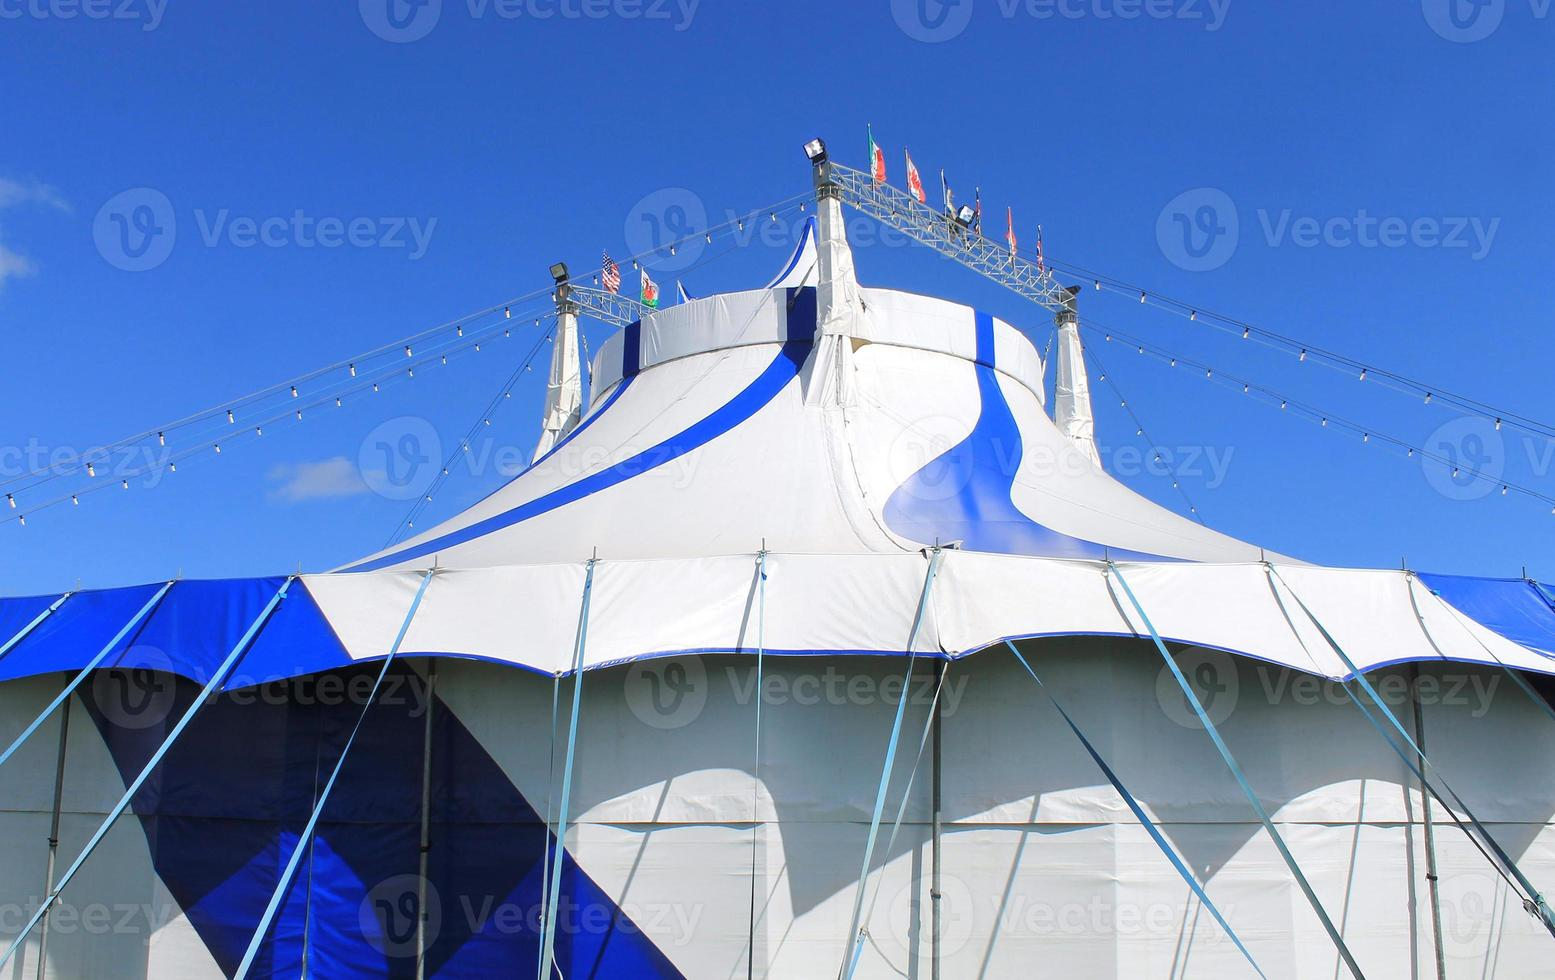 Blue and white big top circus tent photo